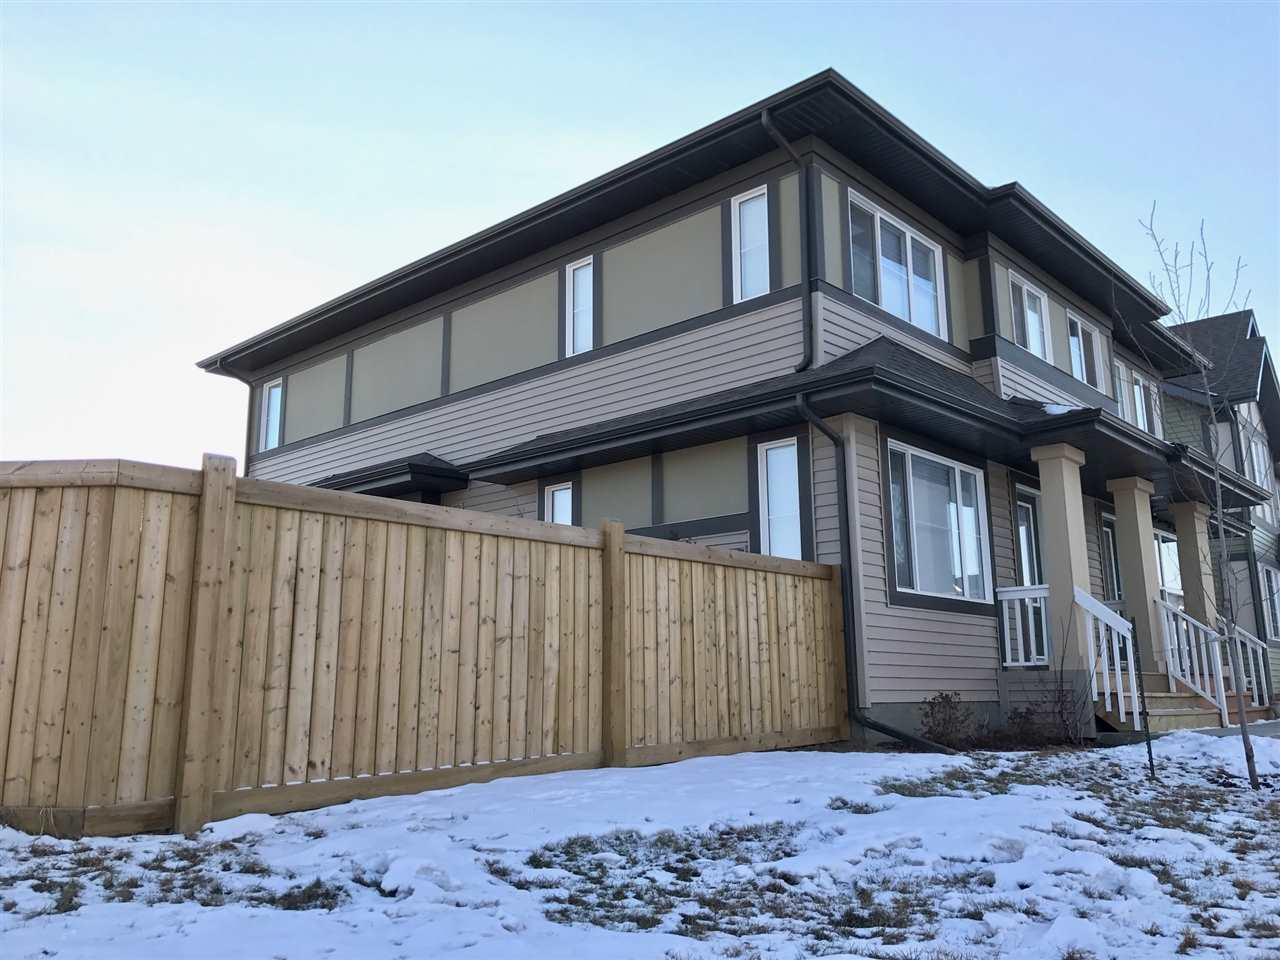 Welcome to a bright 3 BDM 2.5 BTH Brookfield duplex in Paisley with a DBL garage. On a massive corner lot the home has a landscaped, fenced & low-maintenance backyard with a 2-level deck with gas BBQ hookup. The lot is 348sqm across the street from a large green space, with playground & trails nearby. The main floor has a living room at the front of the home & the kitchen features a 9ft long quartz island that seats 6 people. A back dining room overlooks the sunny backyard. The master BDM on the 2nd floor has a spacious ensuite with stand-up shower & ceramic floor tile, large walk-in closet, & room for a king size bed. Bedrooms 2&3 are at the back of the home, beside the 2nd full bathroom. There are 2 linen closets & professional blinds. The full basement is unfinished with washer & dryer. The home is located only a few minutes from the Anthony Henday, Windermere & Magrath/Terwillegar Shopping Centres, a dog park & ravine trails. A grocery store planned within walking distance.